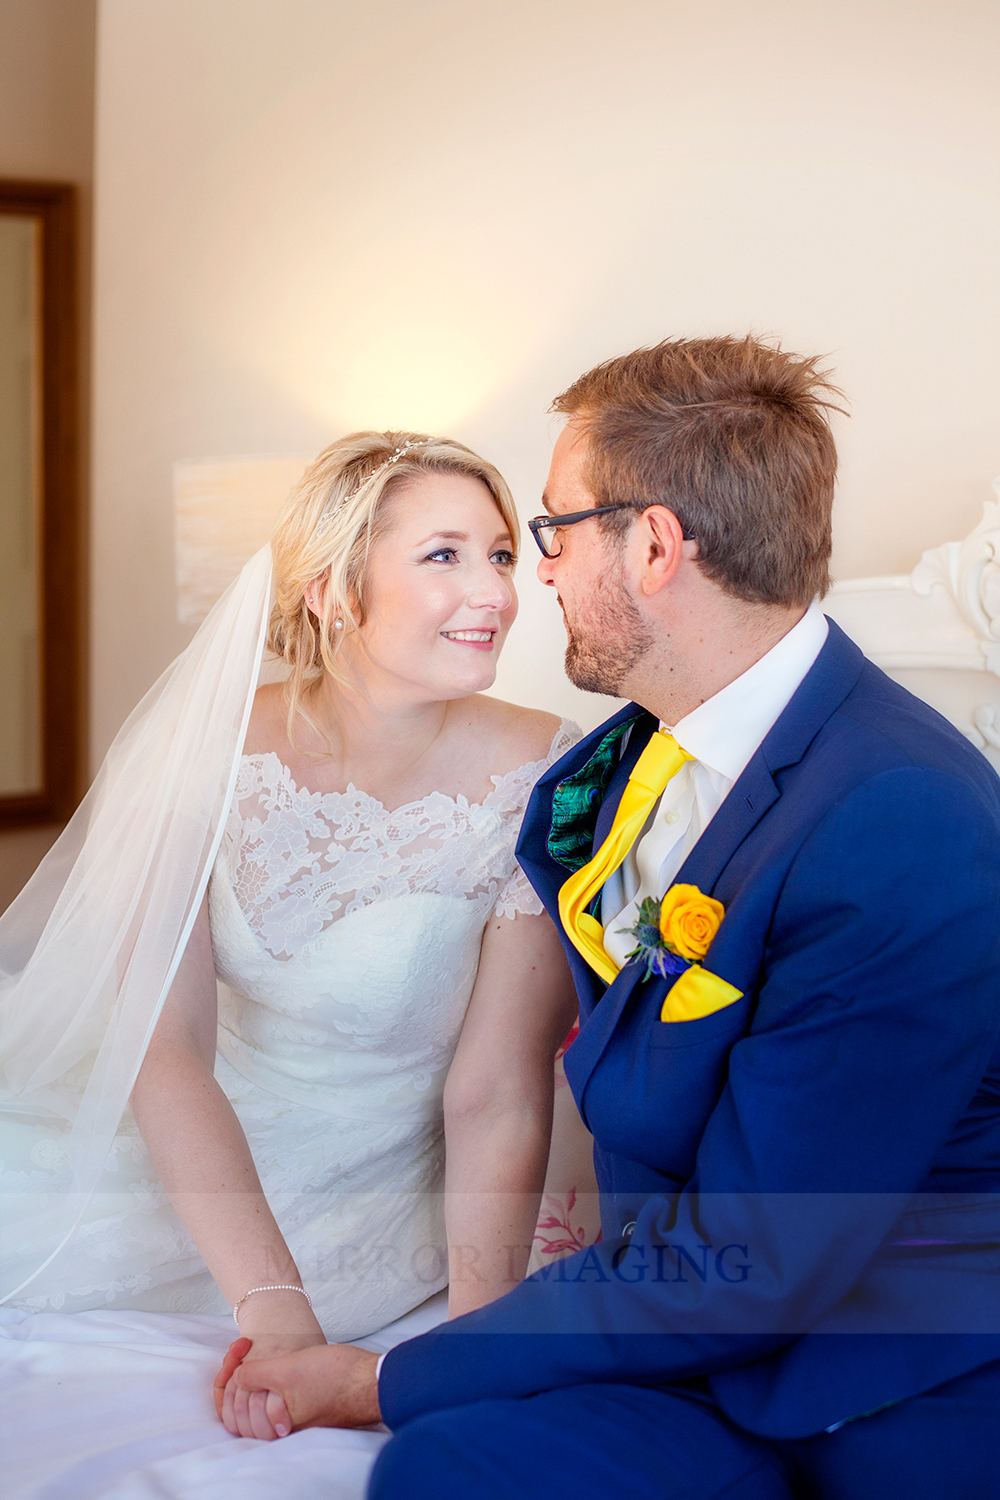 notts wedding photographer 43.jpg